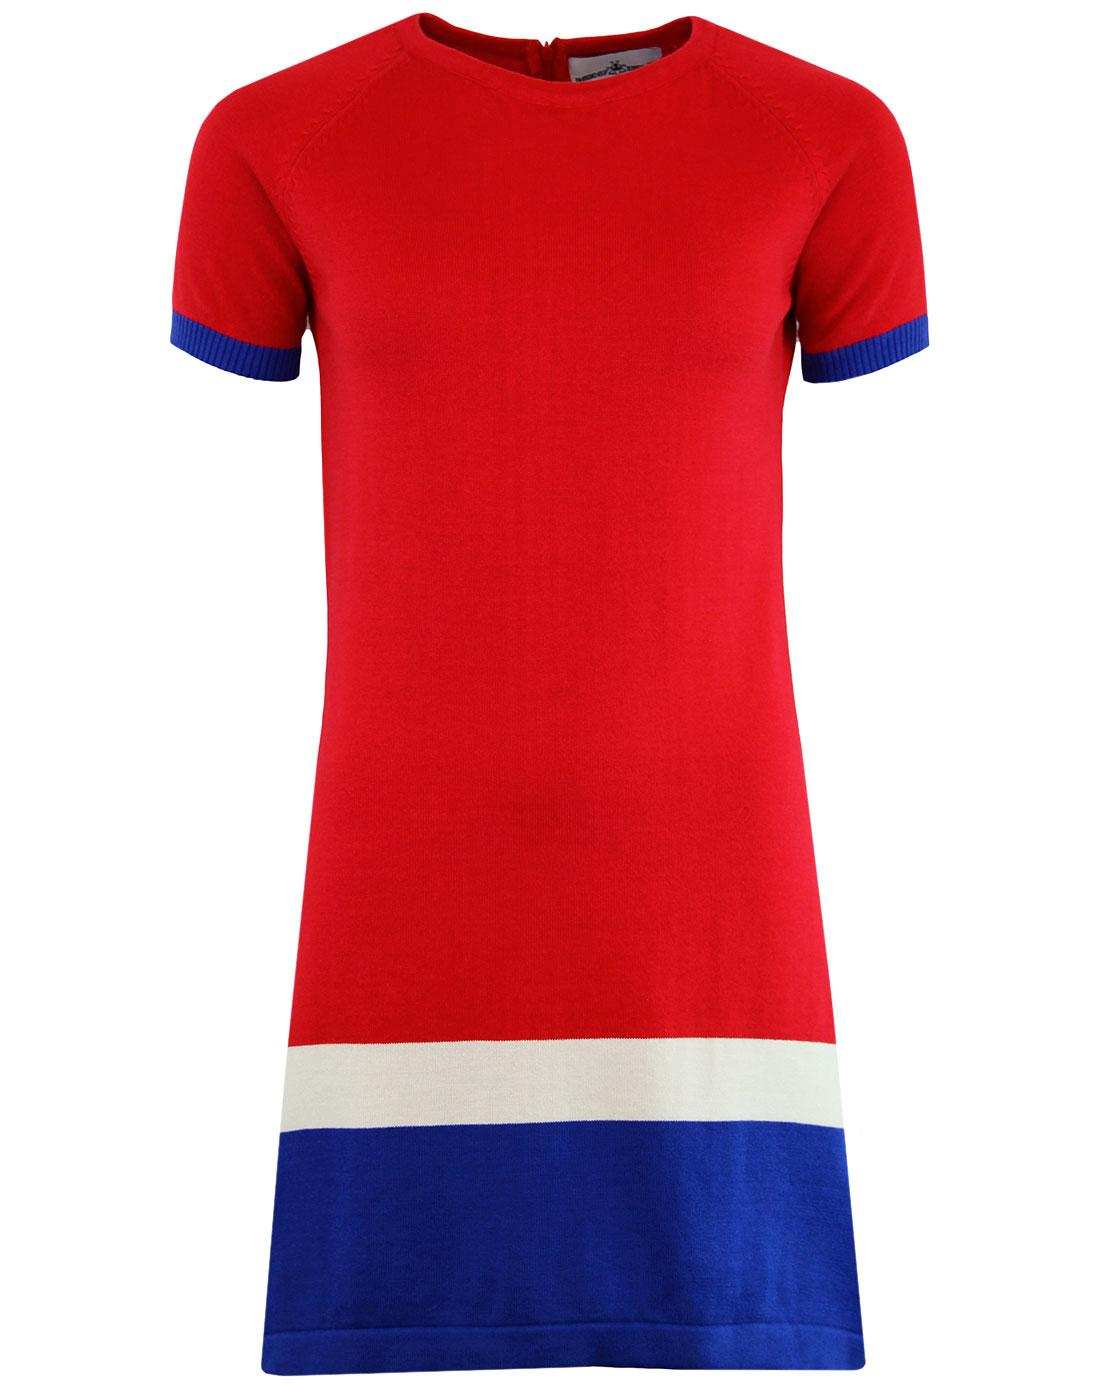 Jenny MADCAP ENGLAND 60s Mod Block Colour Dress